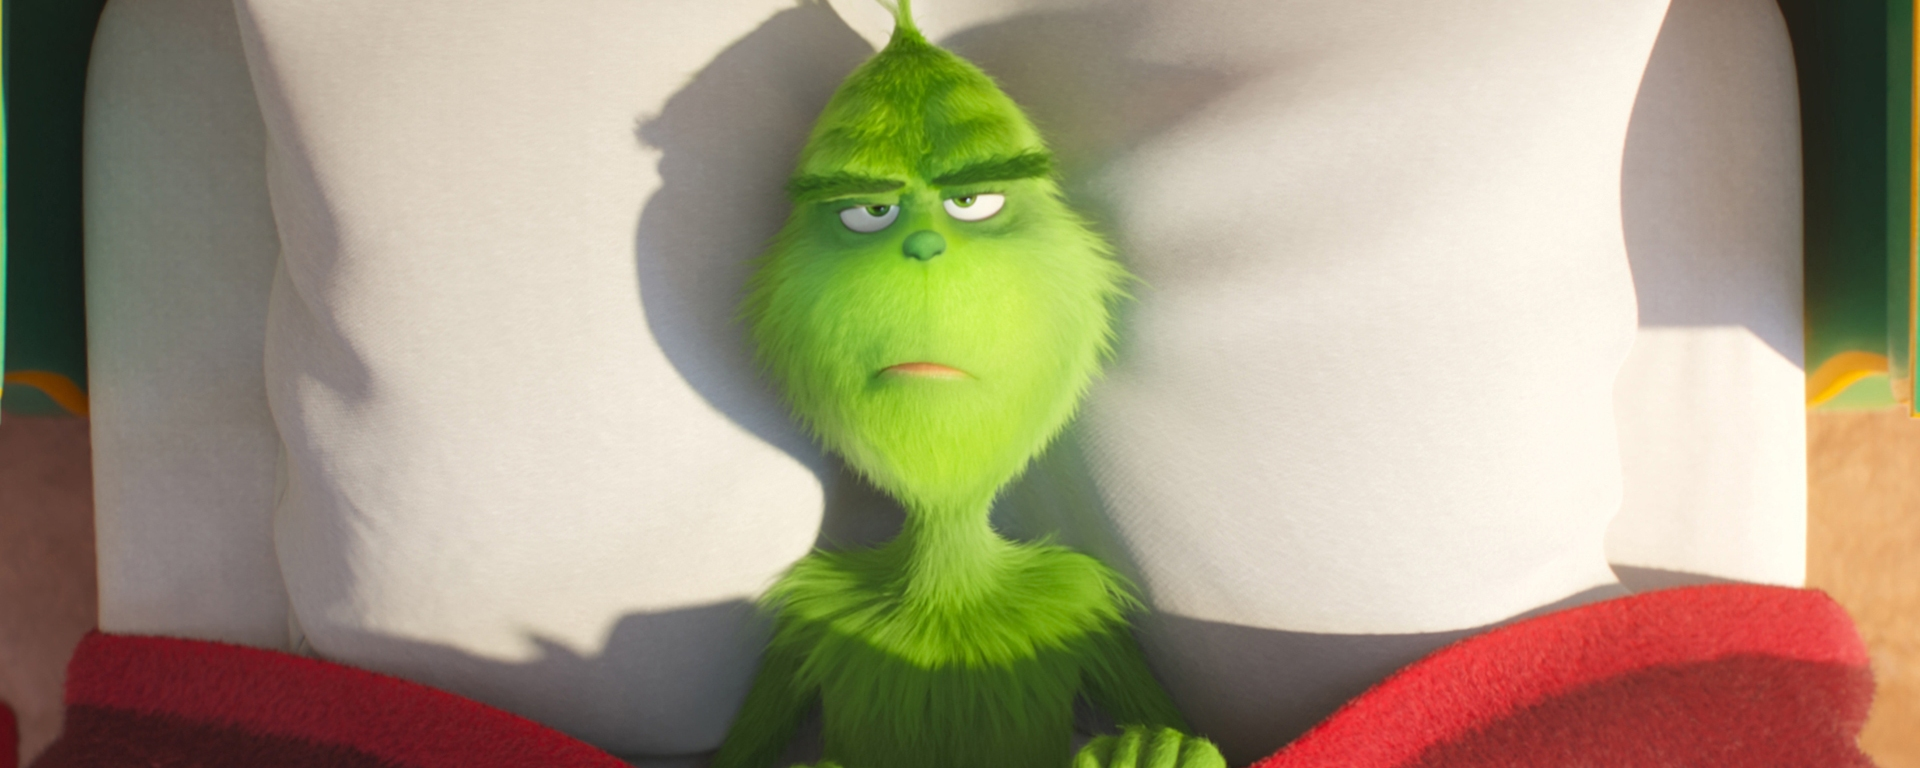 grinch movie